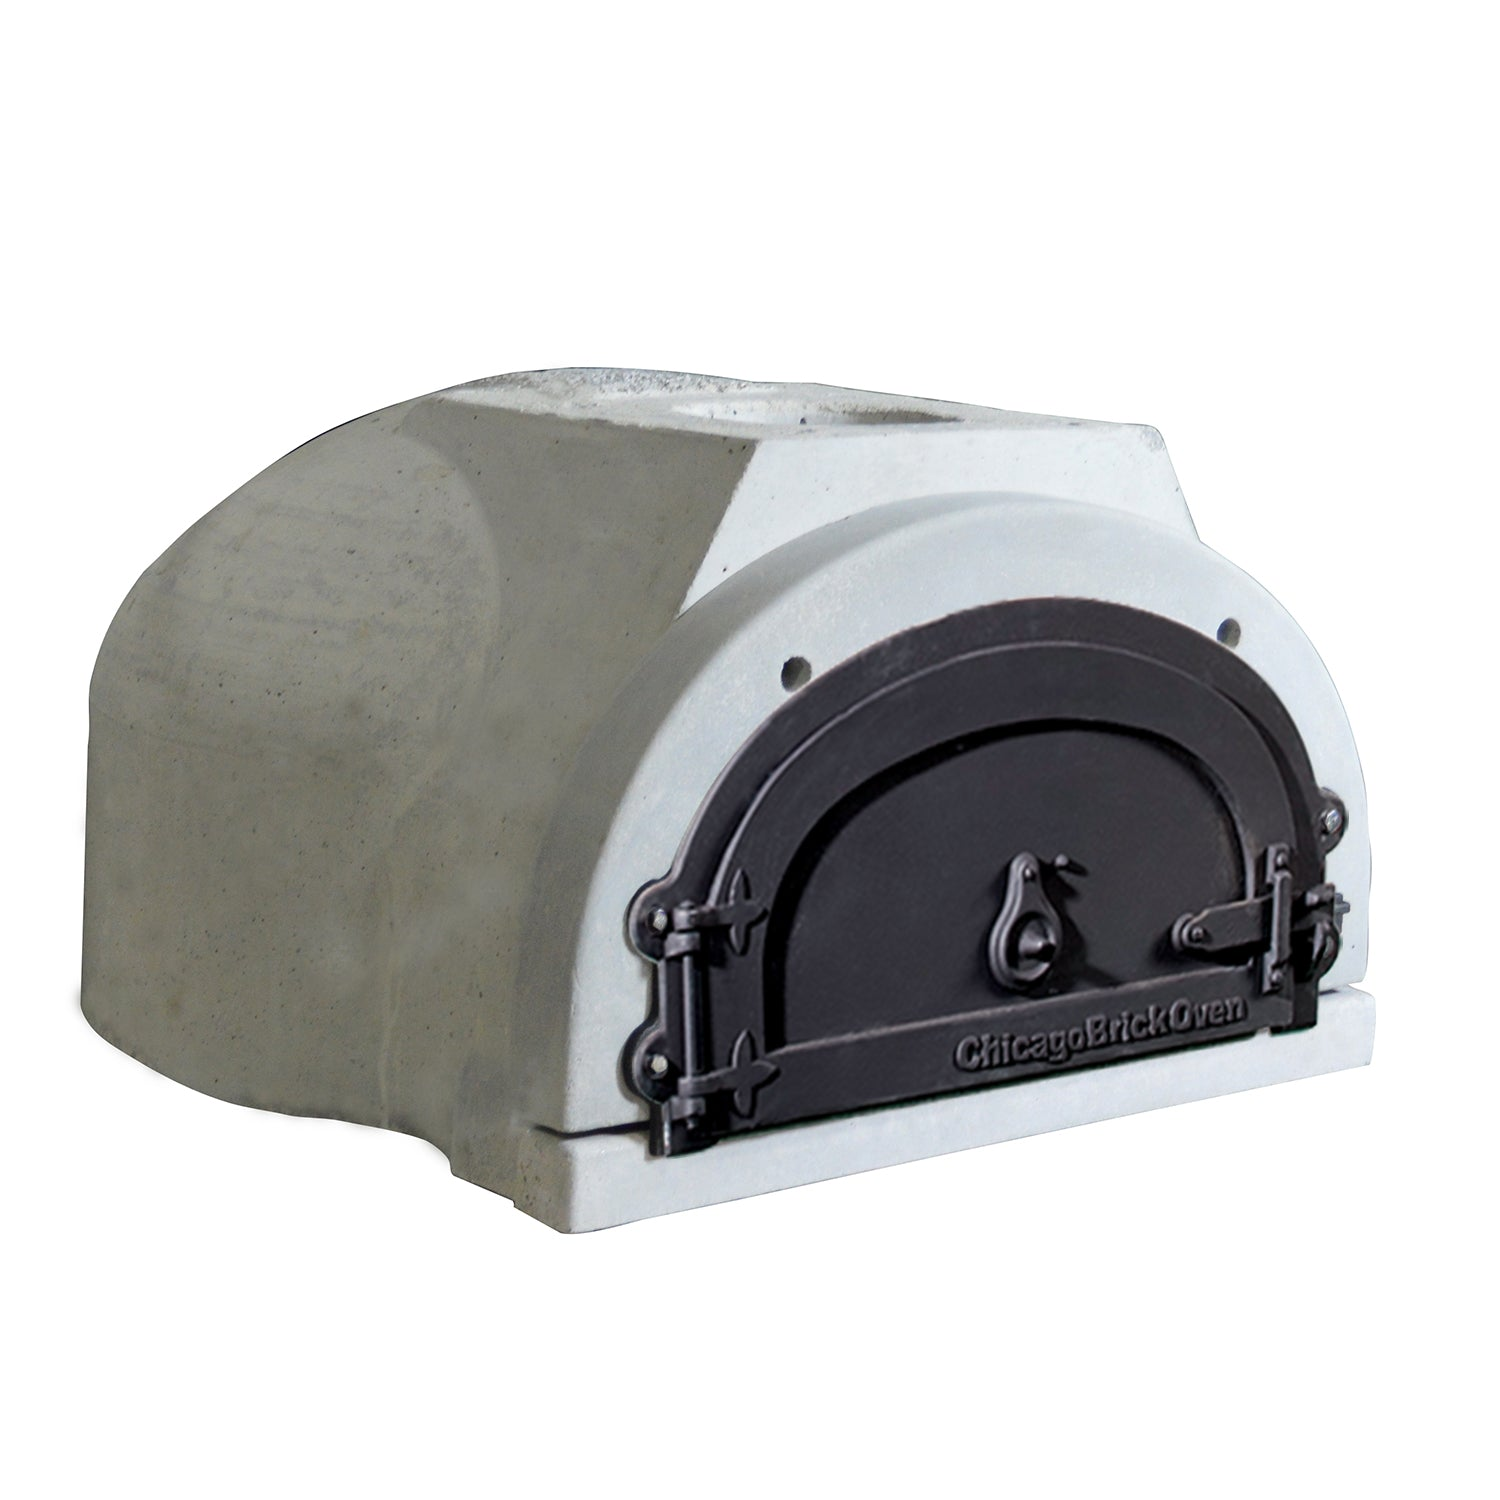 Cbo 500 Outdoor Pizza Oven Diy Kit